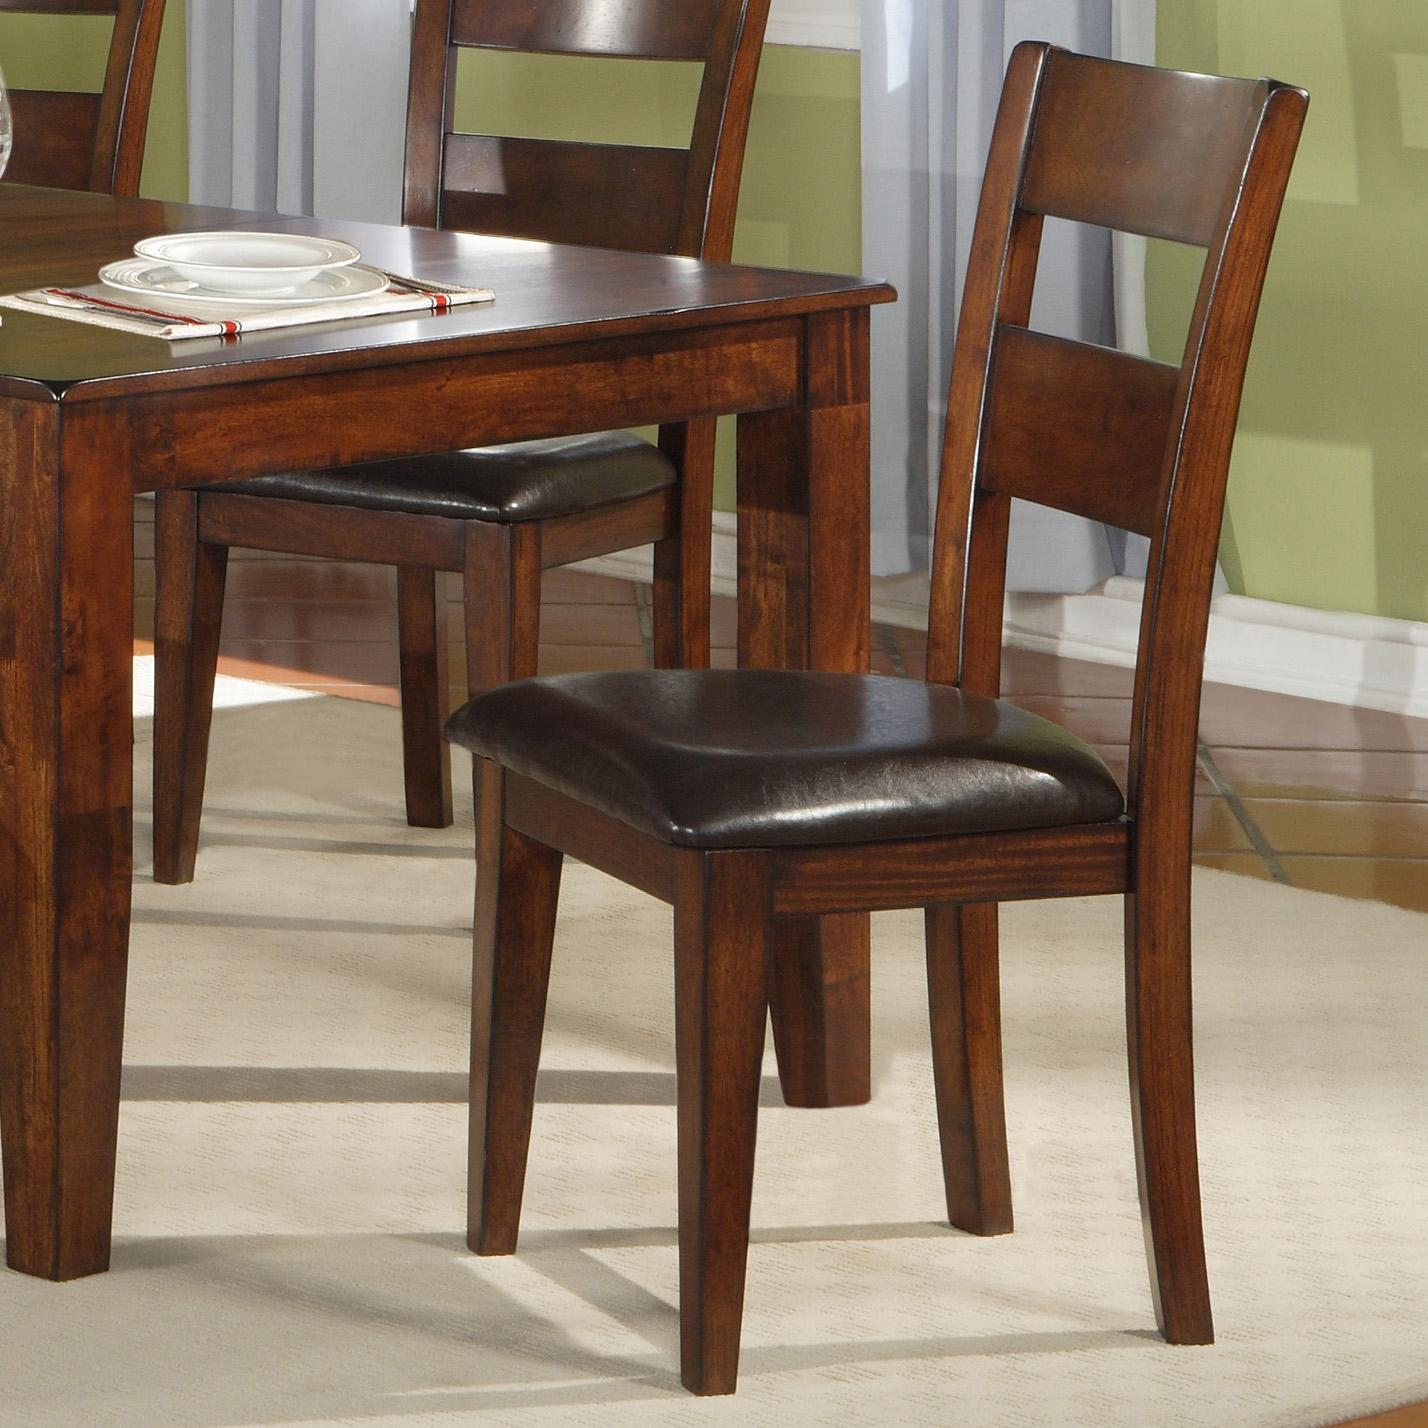 Melbourne Melbourne Dining Chair by Holland House at Morris Home